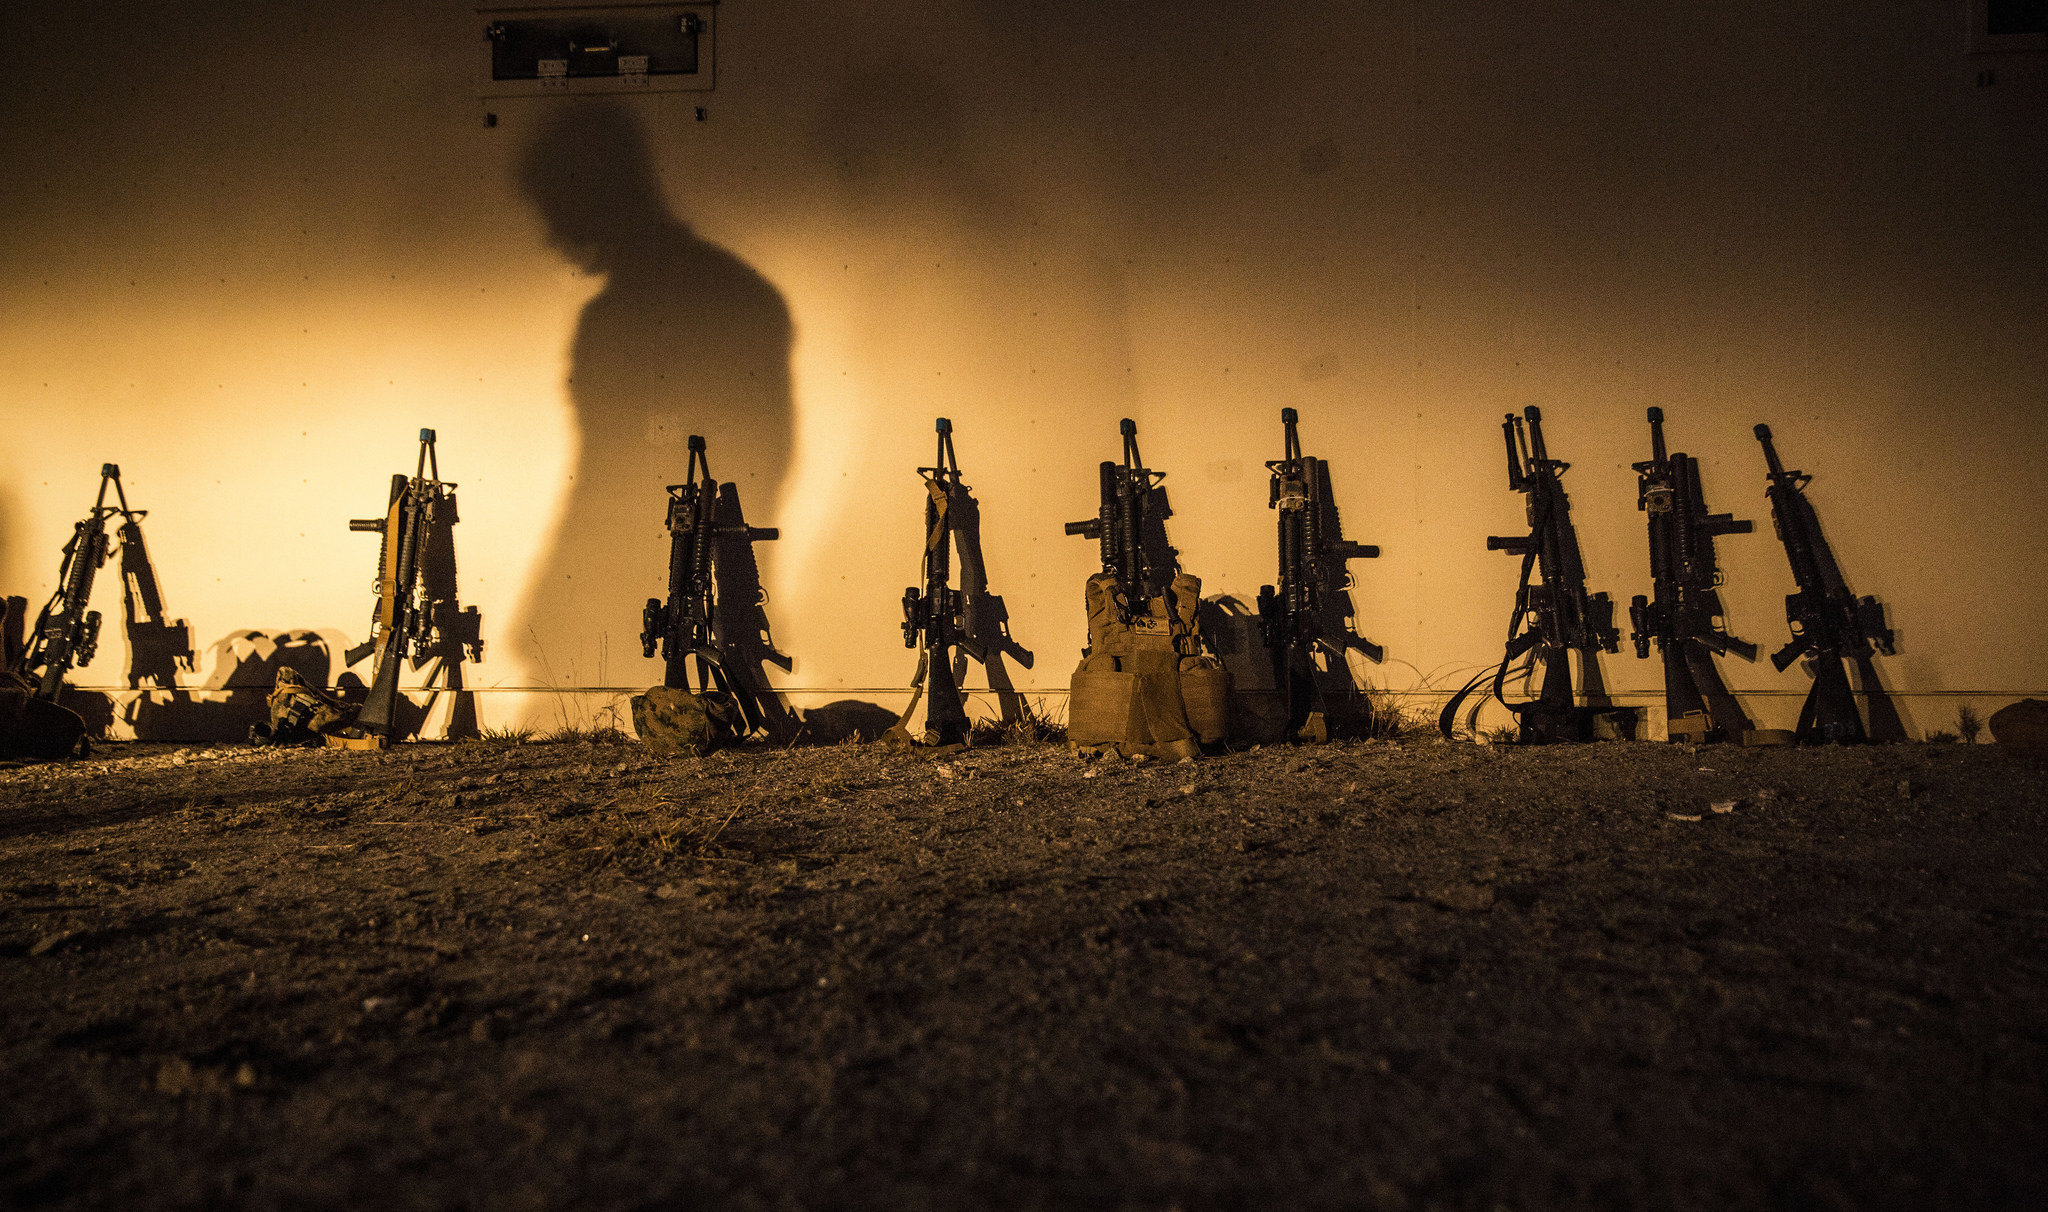 Soldiers indicted for selling guns and explosives to cartel